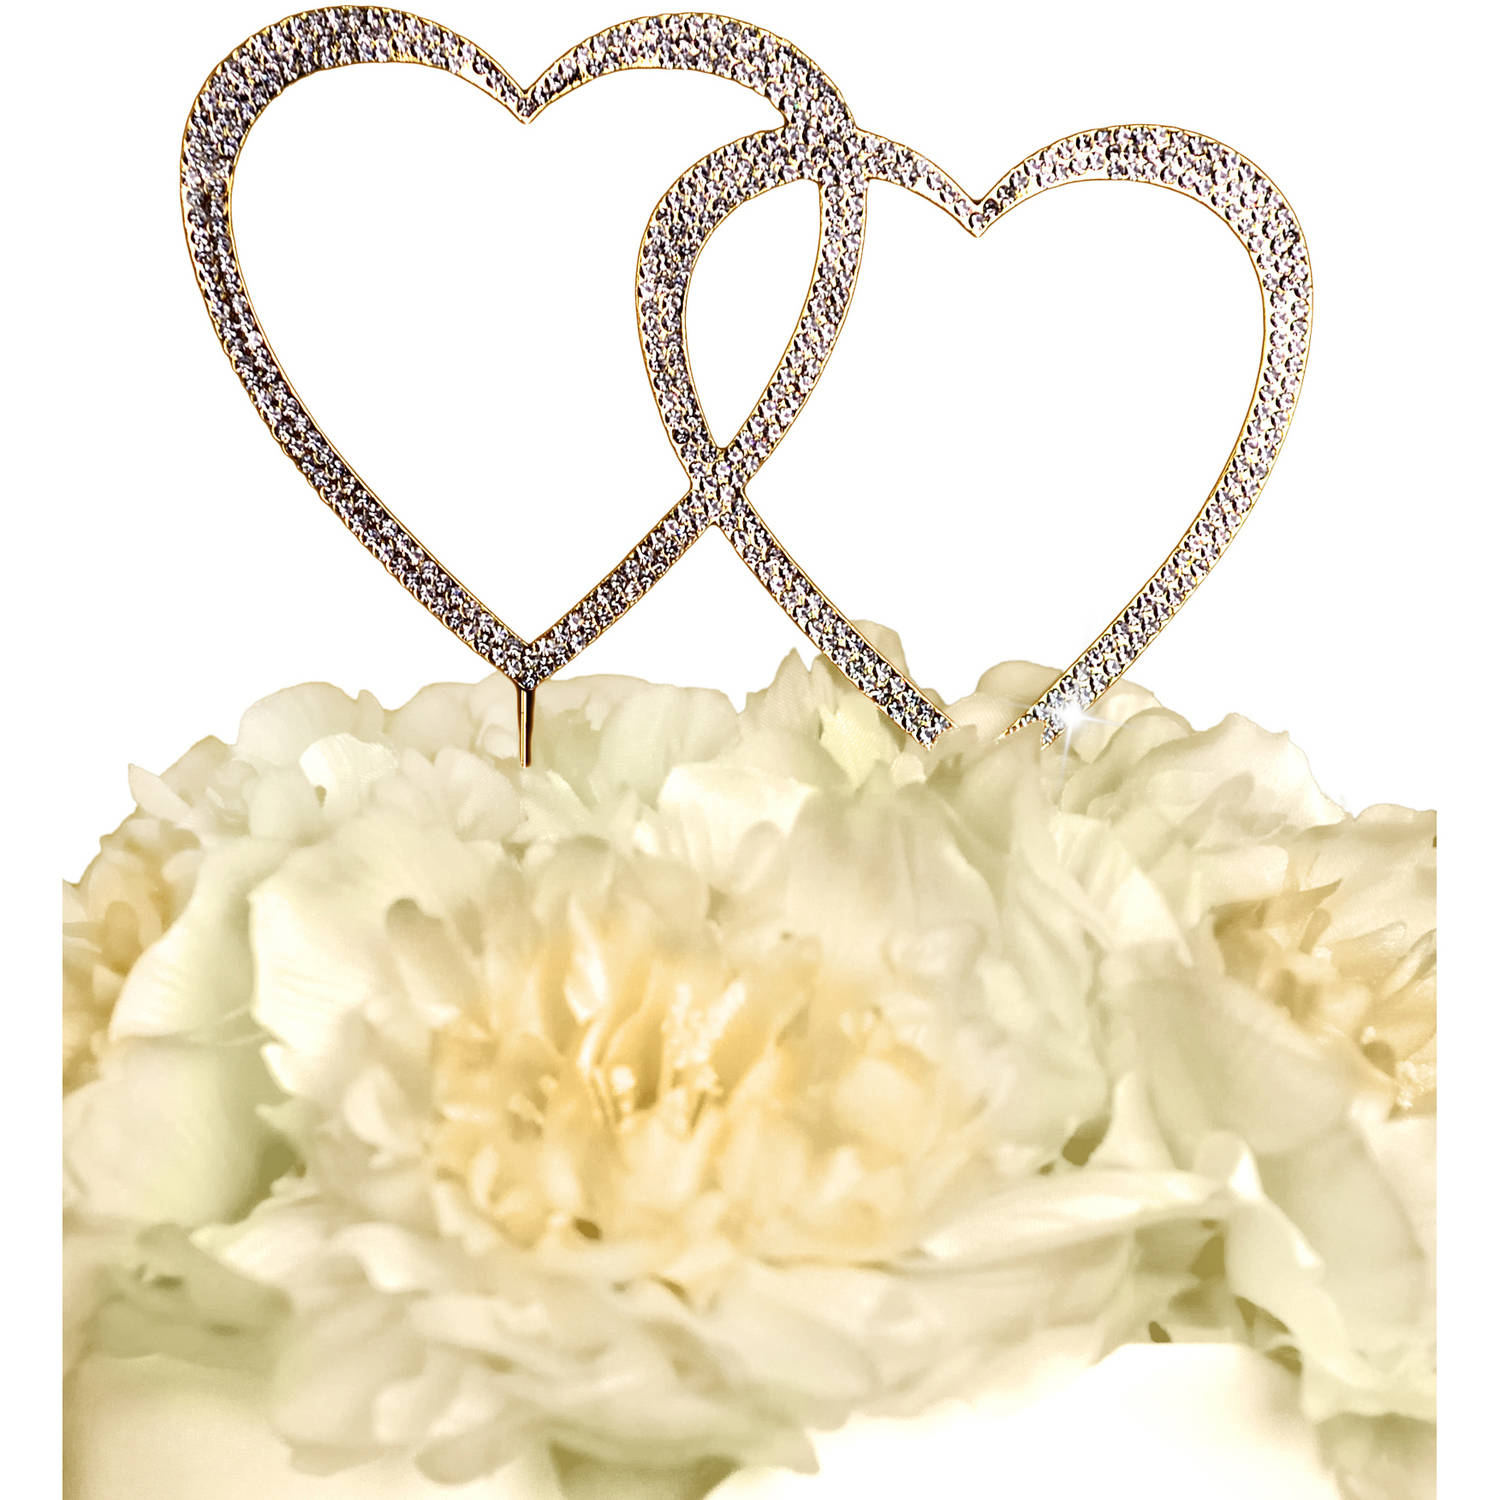 Unik Occasions Sparkling Collection Double Heart Cake Topper, Large, Gold